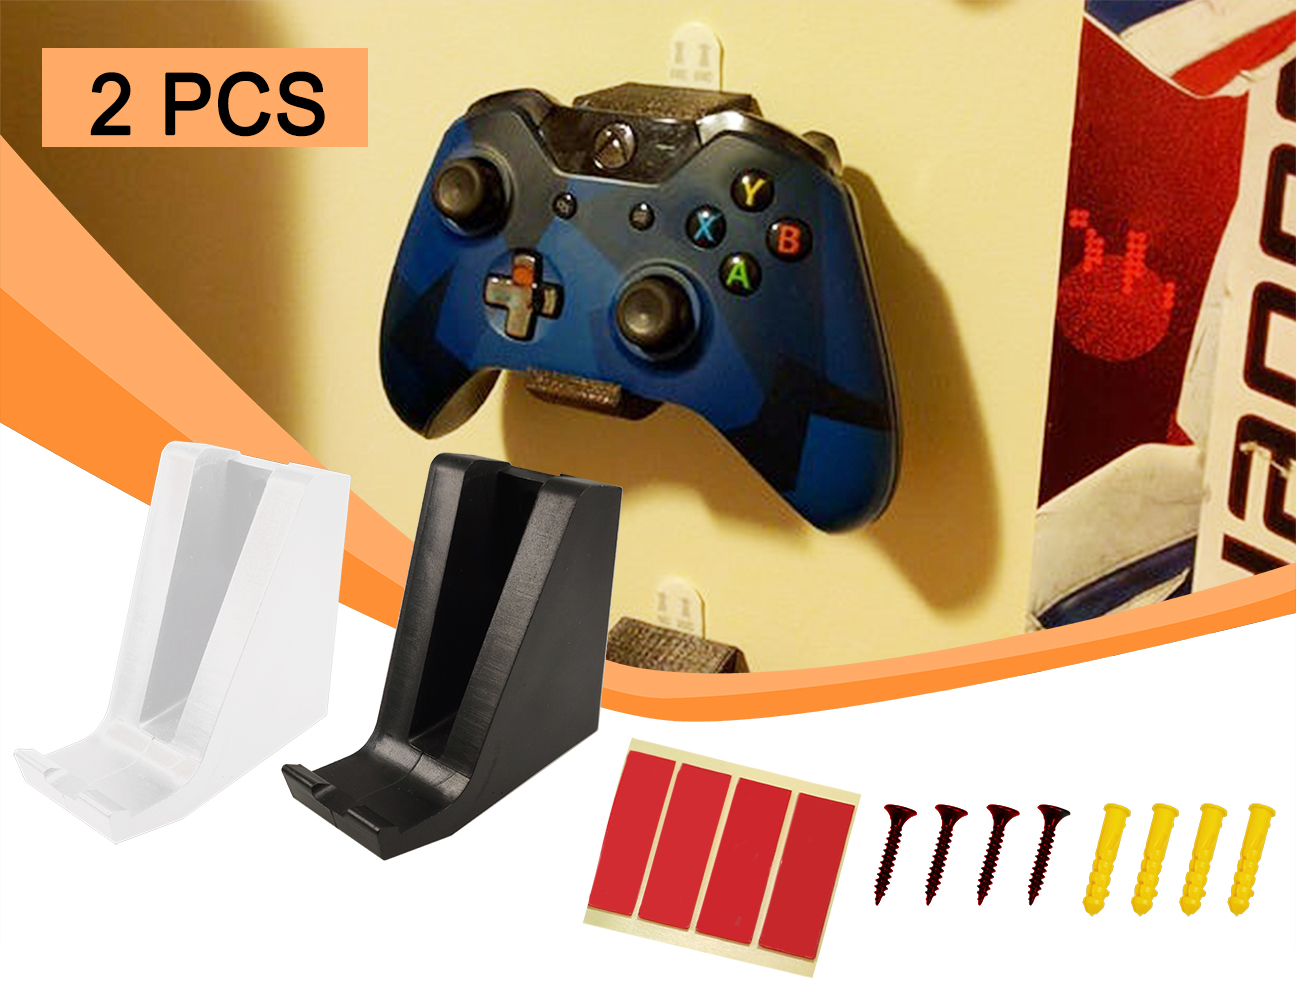 2pcs Wall Stand Holder Mount Bracket Dock Xbox Handles One Game Wireless Controller Gamepad Handle PS4 Storage High Quality